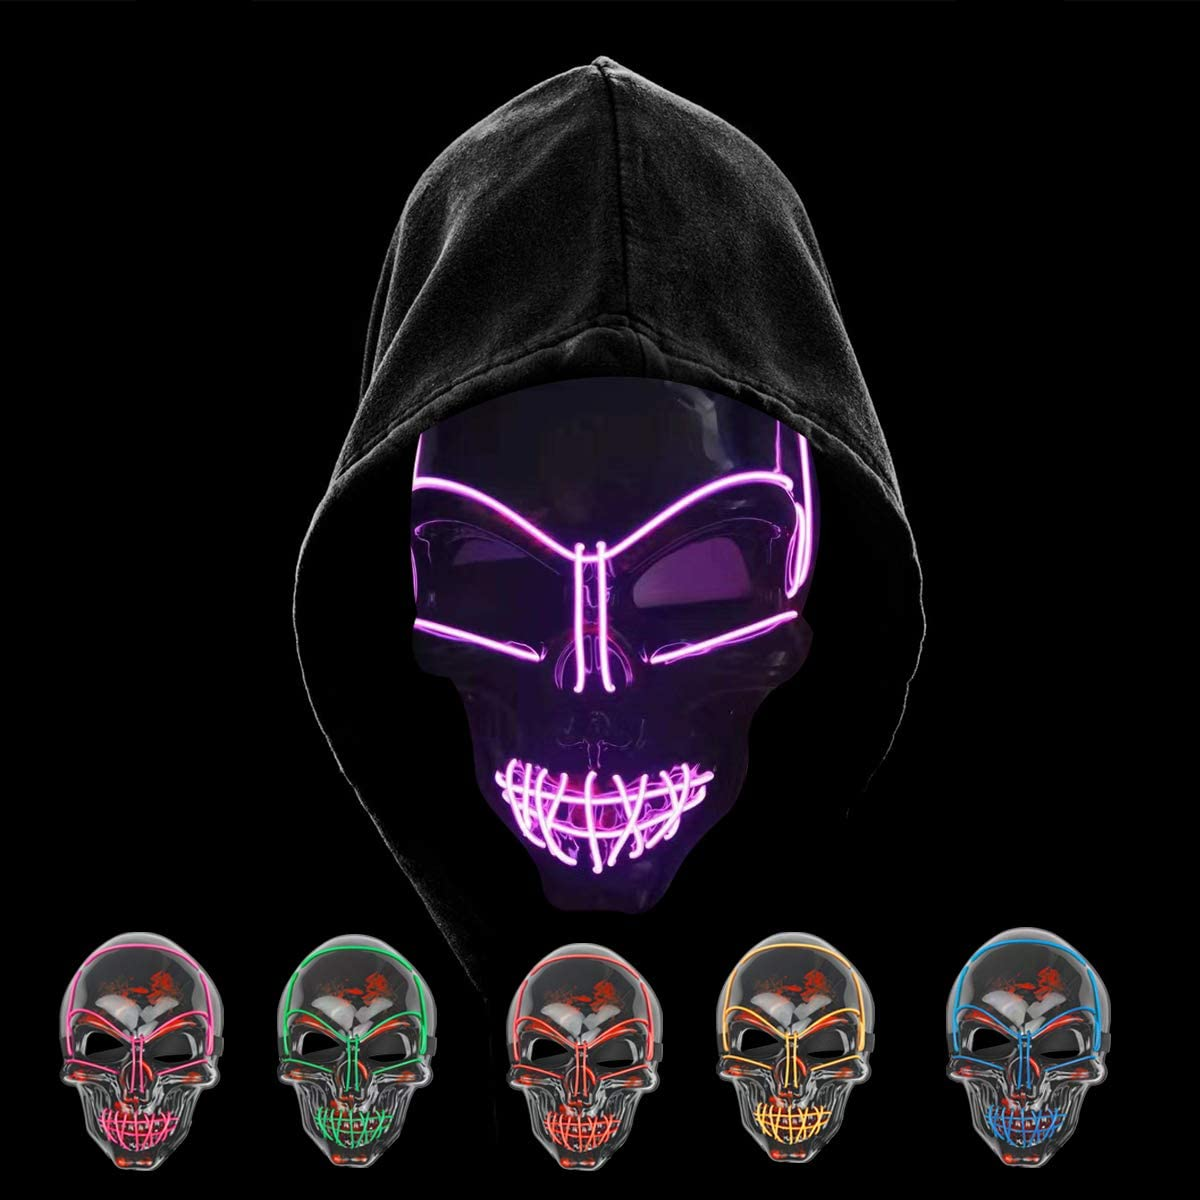 KiraKira Máscara LED Halloween, Halloween LED Máscaras Adultos LED Mask para la Fiesta de Disfraces, Máscara Disfraz Luminosa Craneo Esqueleto (red01)